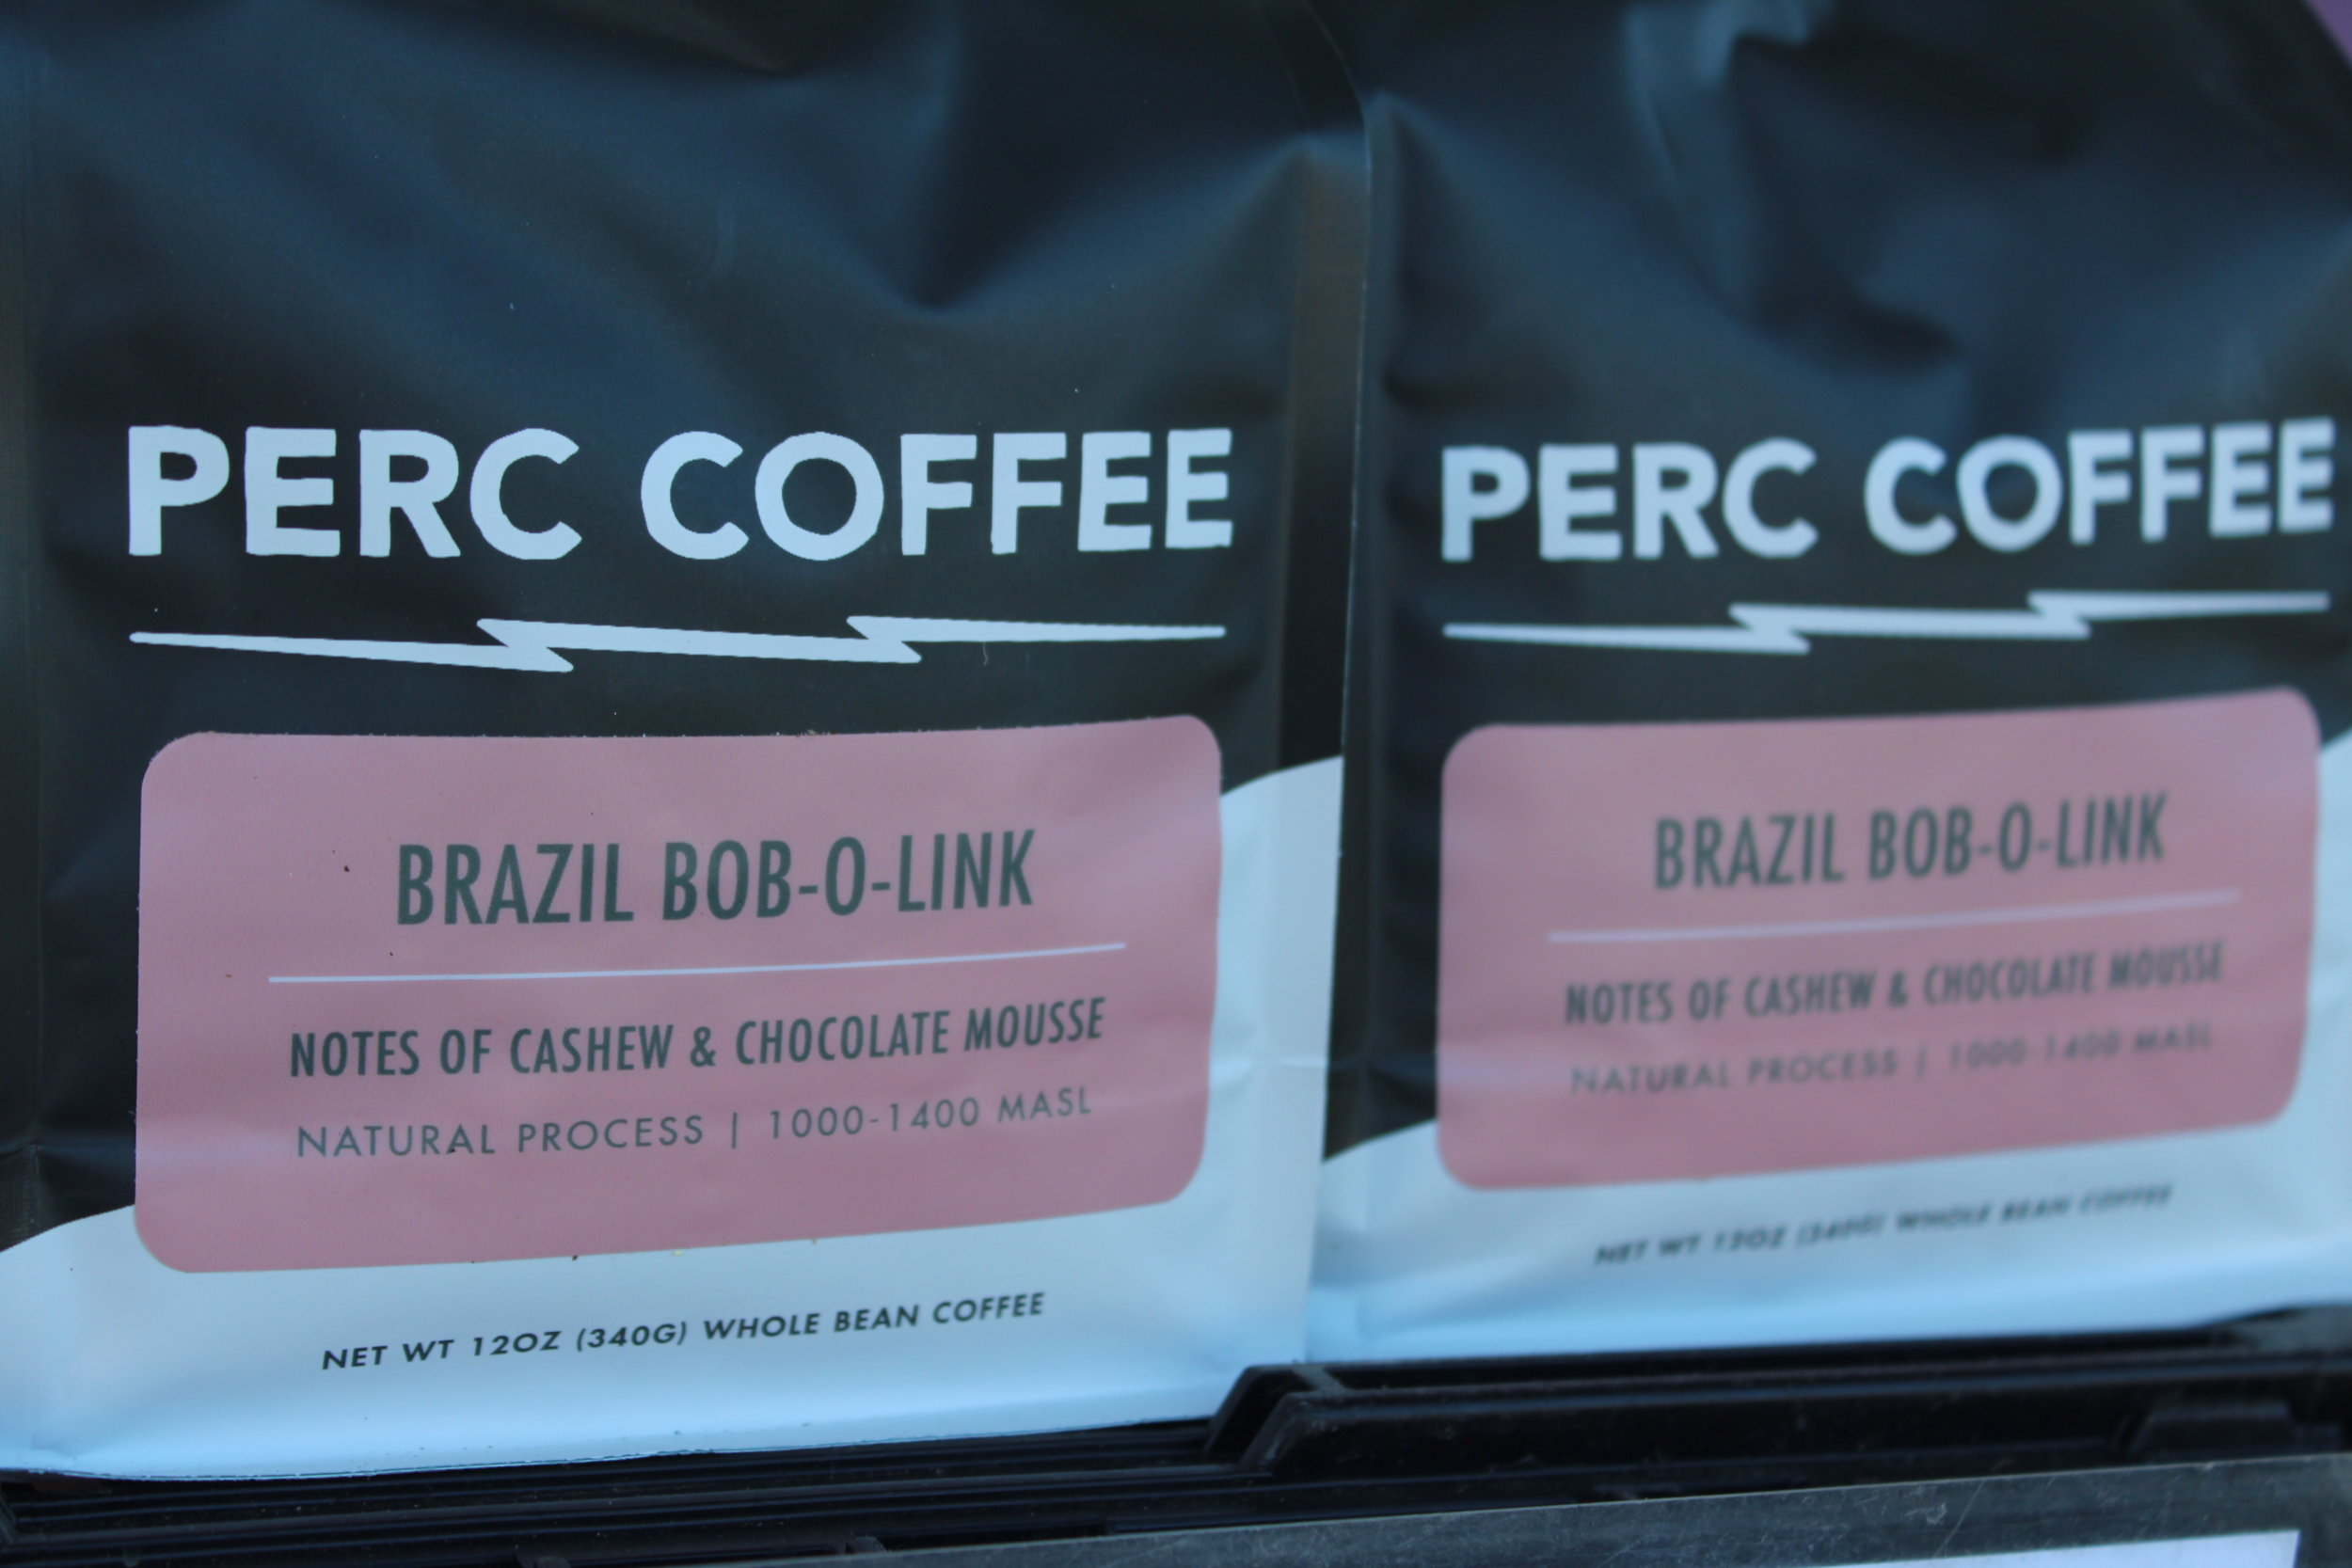 Bob-O-Link PERC Coffee, $12  12oz, notes of cashew & chocolate mousse, whole bean coffee